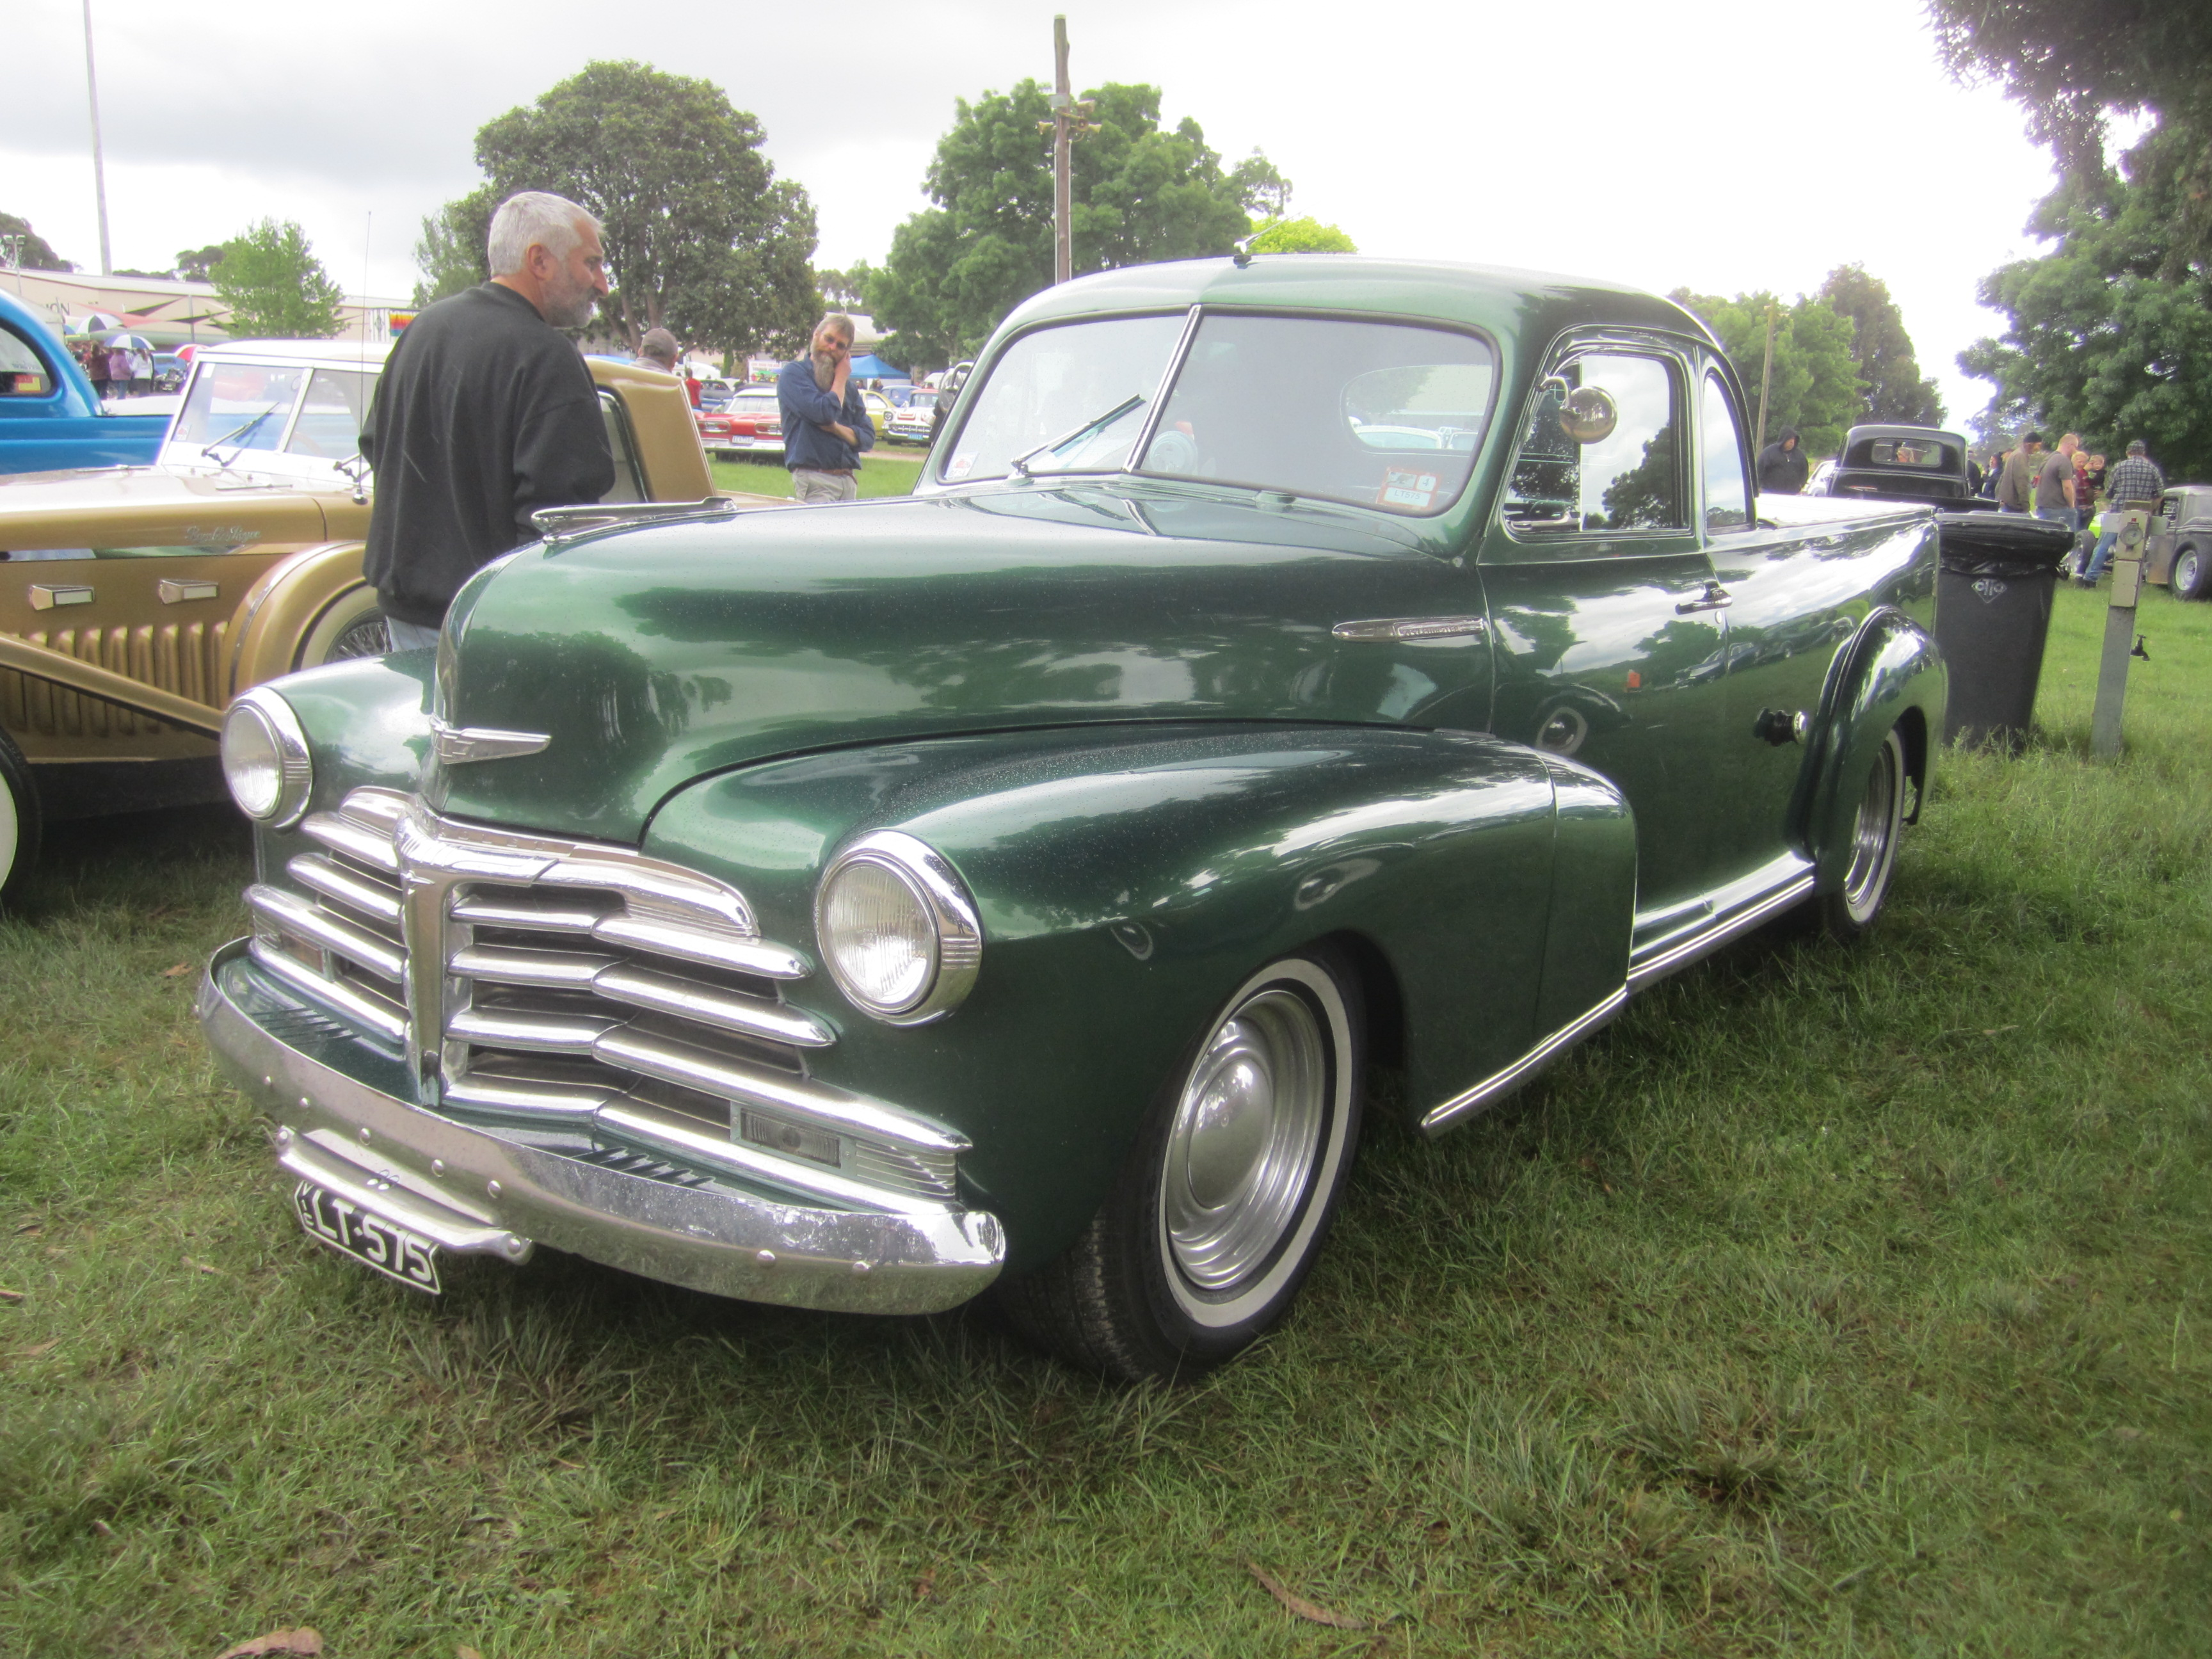 File:1948 Chevrolet Coupe Utility.jpg - Wikimedia Commons